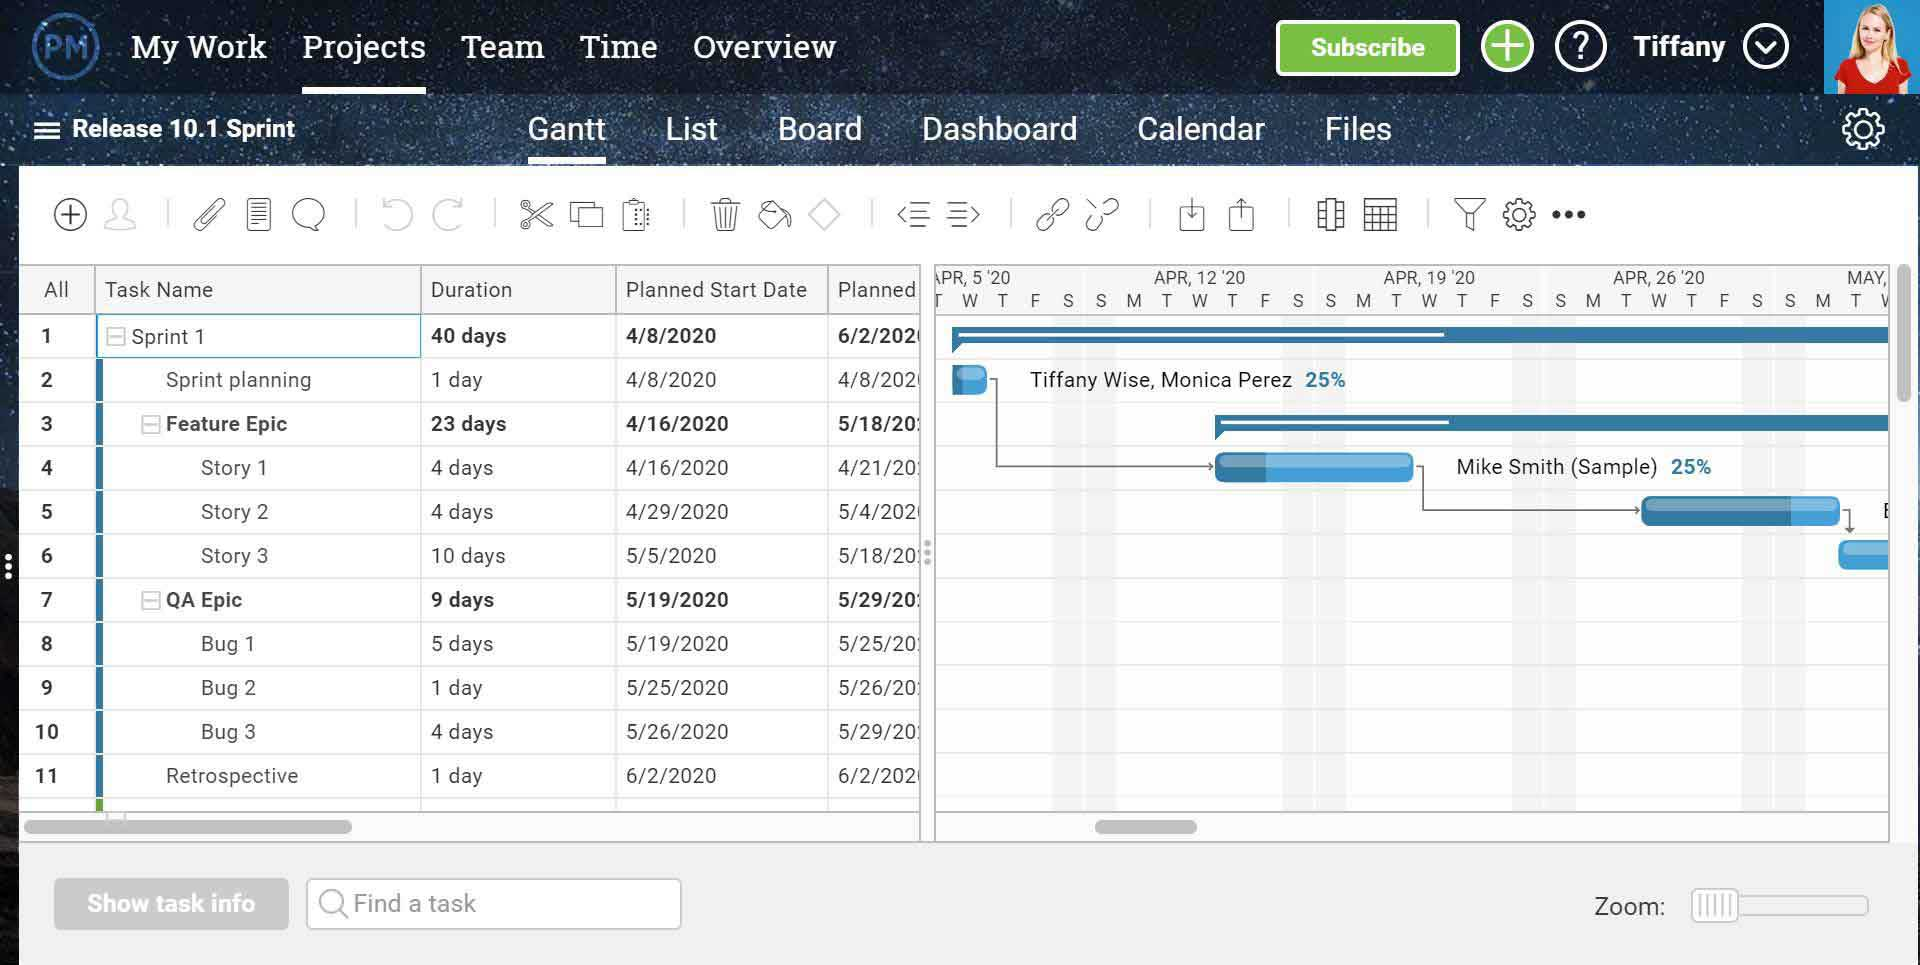 A screenshot of ProjectManager.com's Gantt chart, showing a list of tasks on the right side and bars on the right.